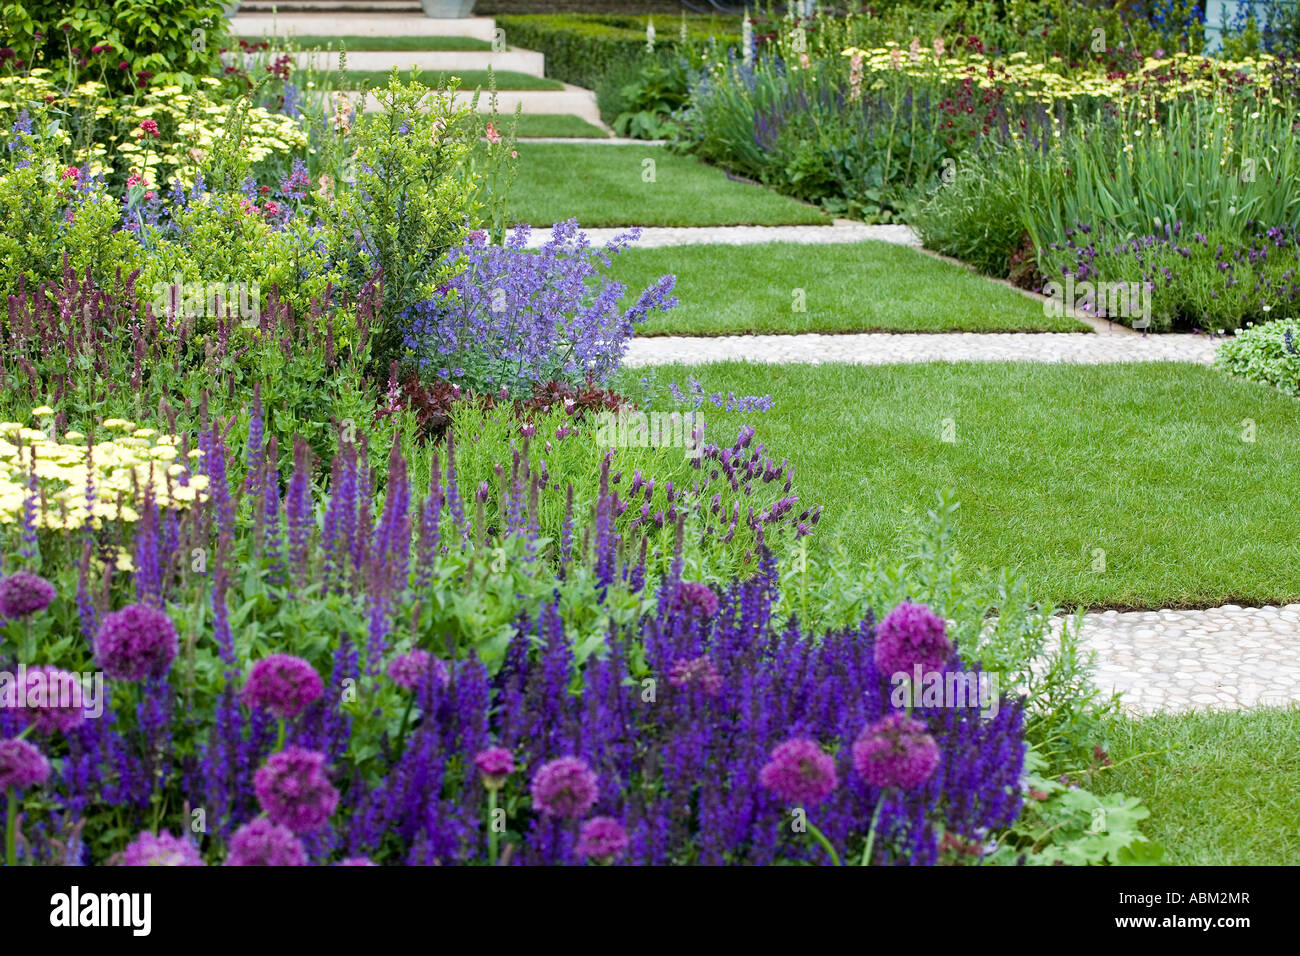 RHS CHELSEA FLOWER SHOW 2007 Stock Royalty Free Image Alamy